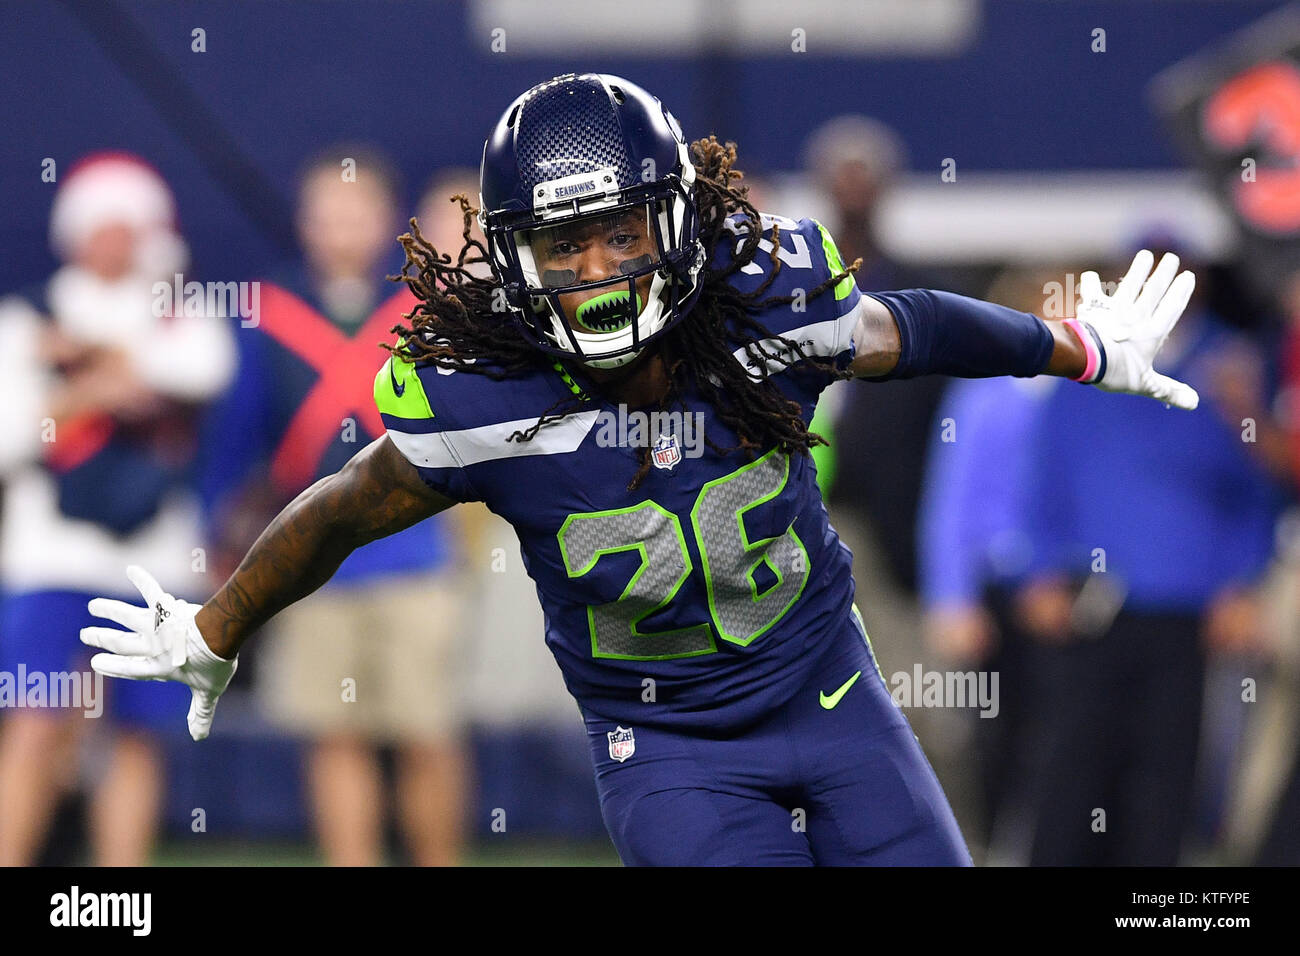 41c46eafa35 Seattle Seahawks cornerback Shaquill Griffin (26) reacts after sacking  Dallas Cowboys quarterback Dak Prescott (4) during an NFL football game  between the ...